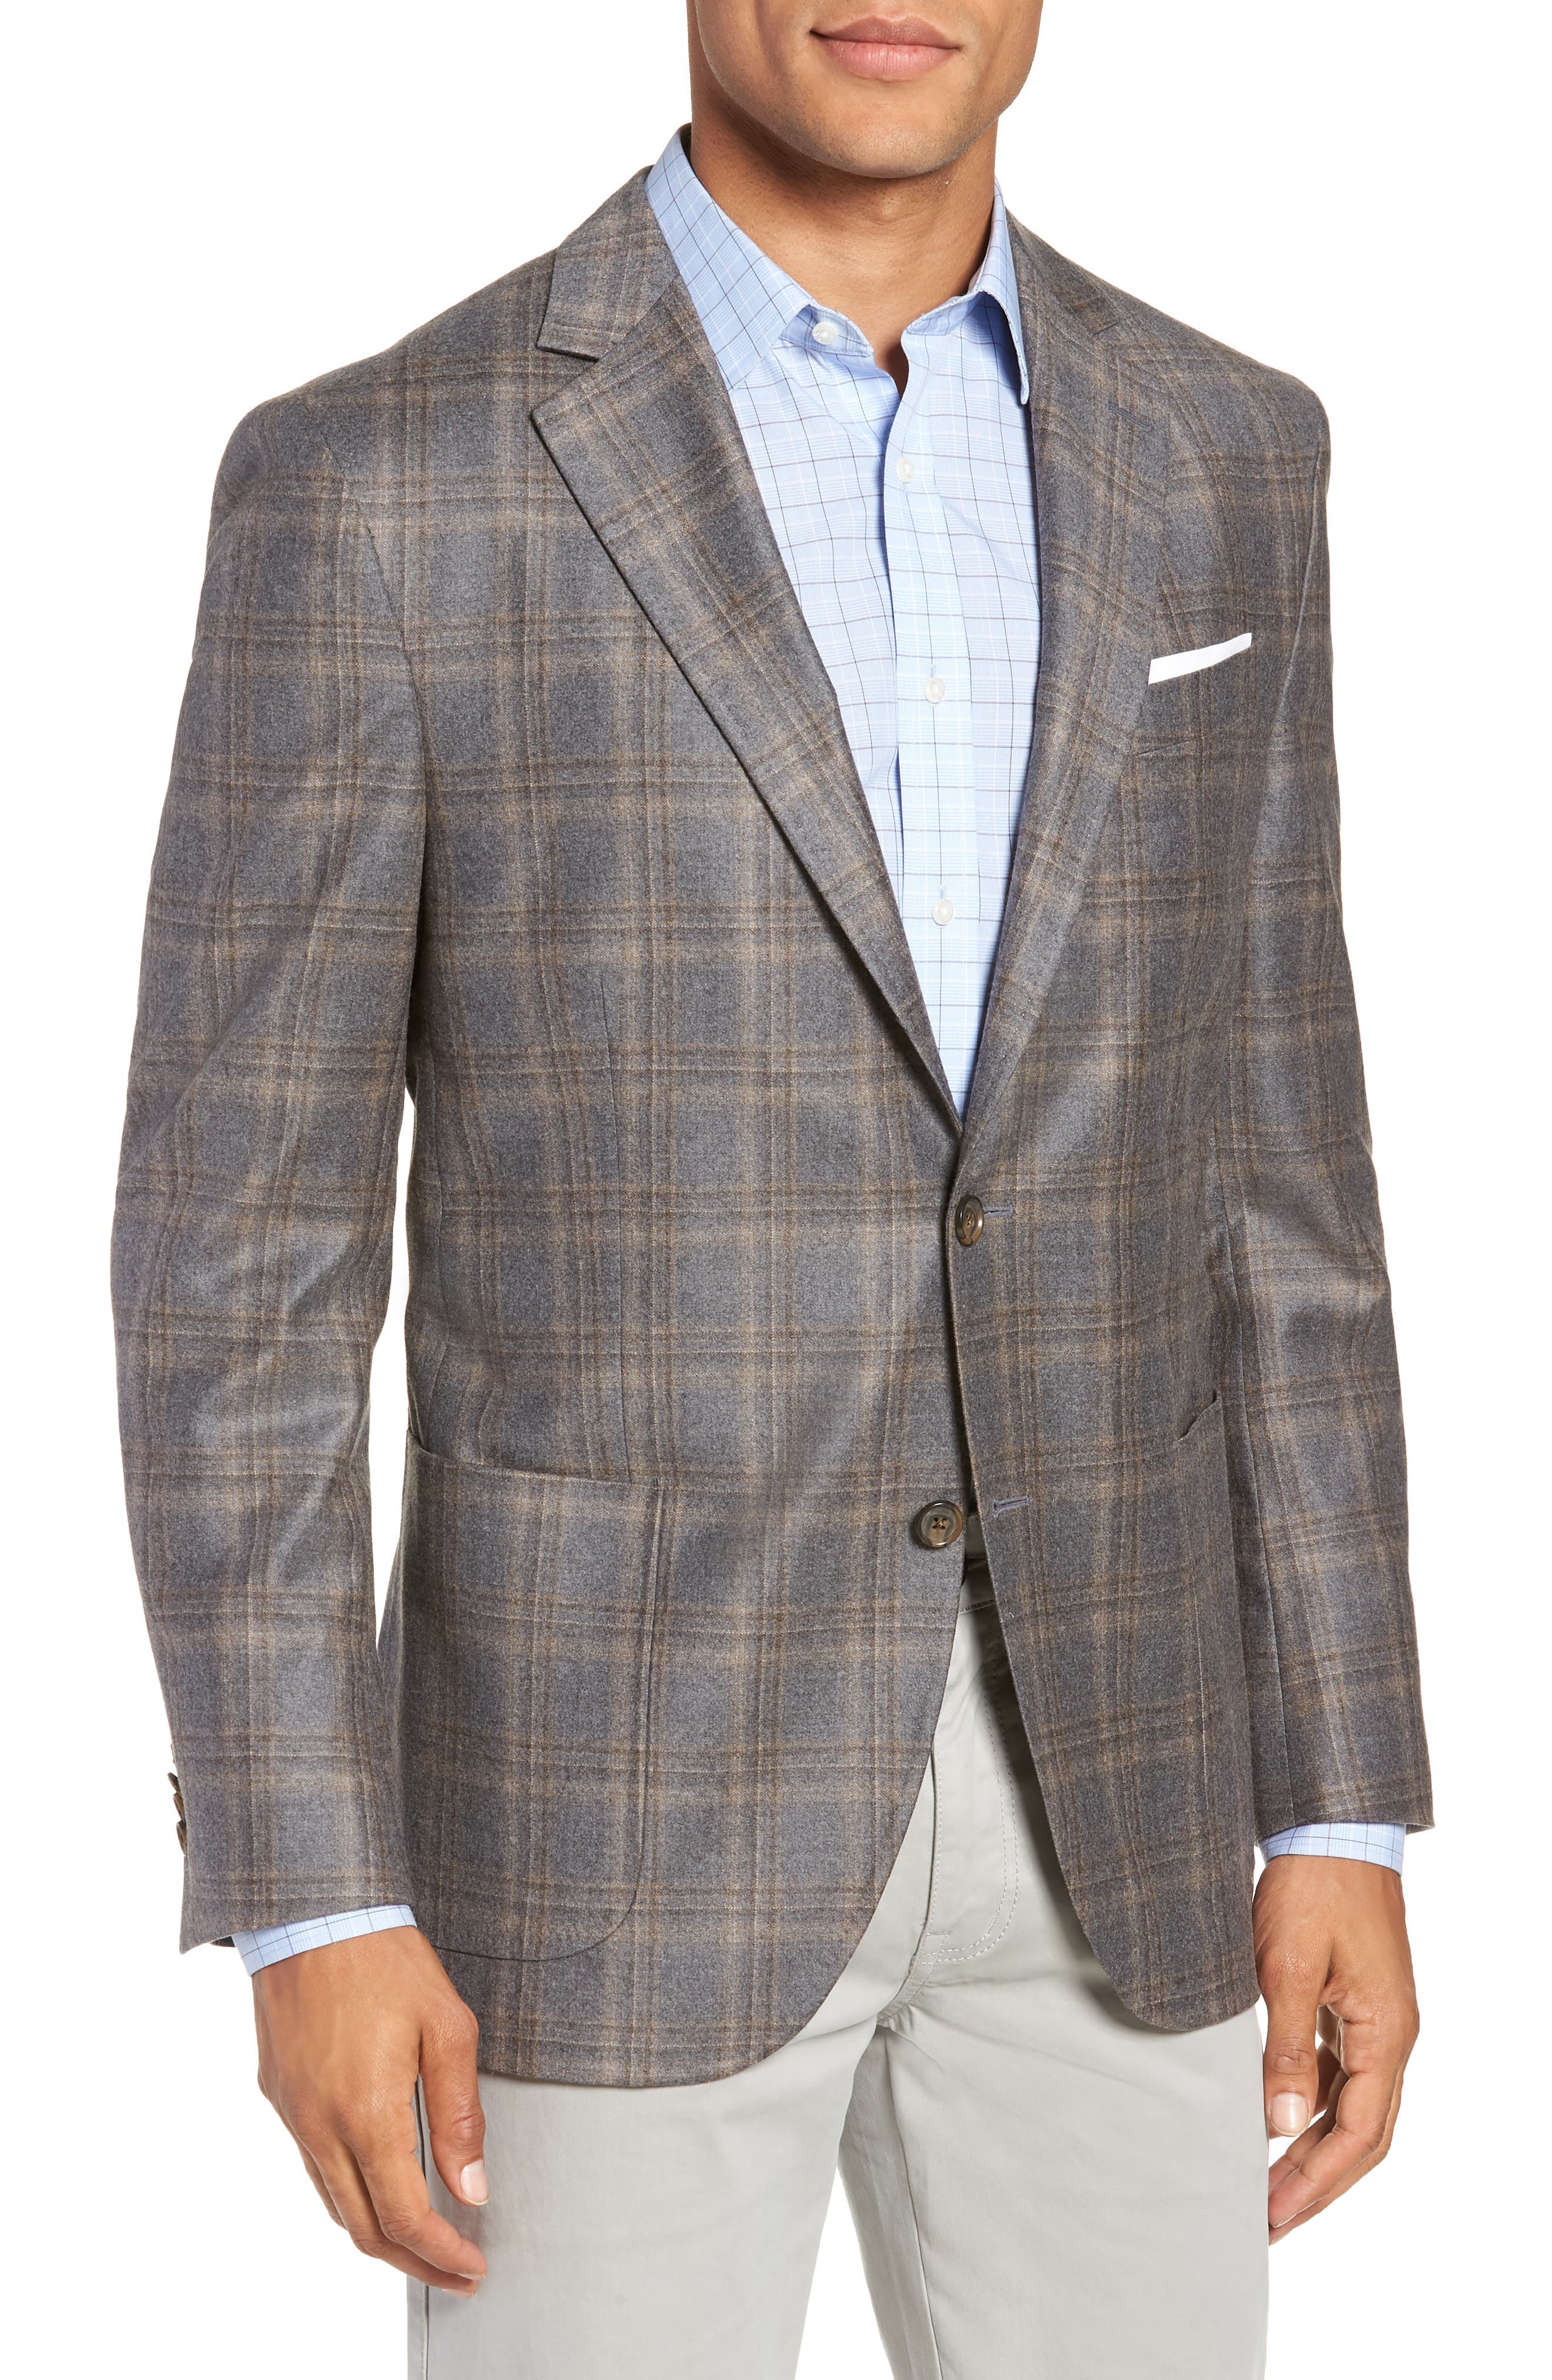 Hyperlight Classic Fit Wool Sport Coat,                             Main thumbnail 1, color,                             GREY